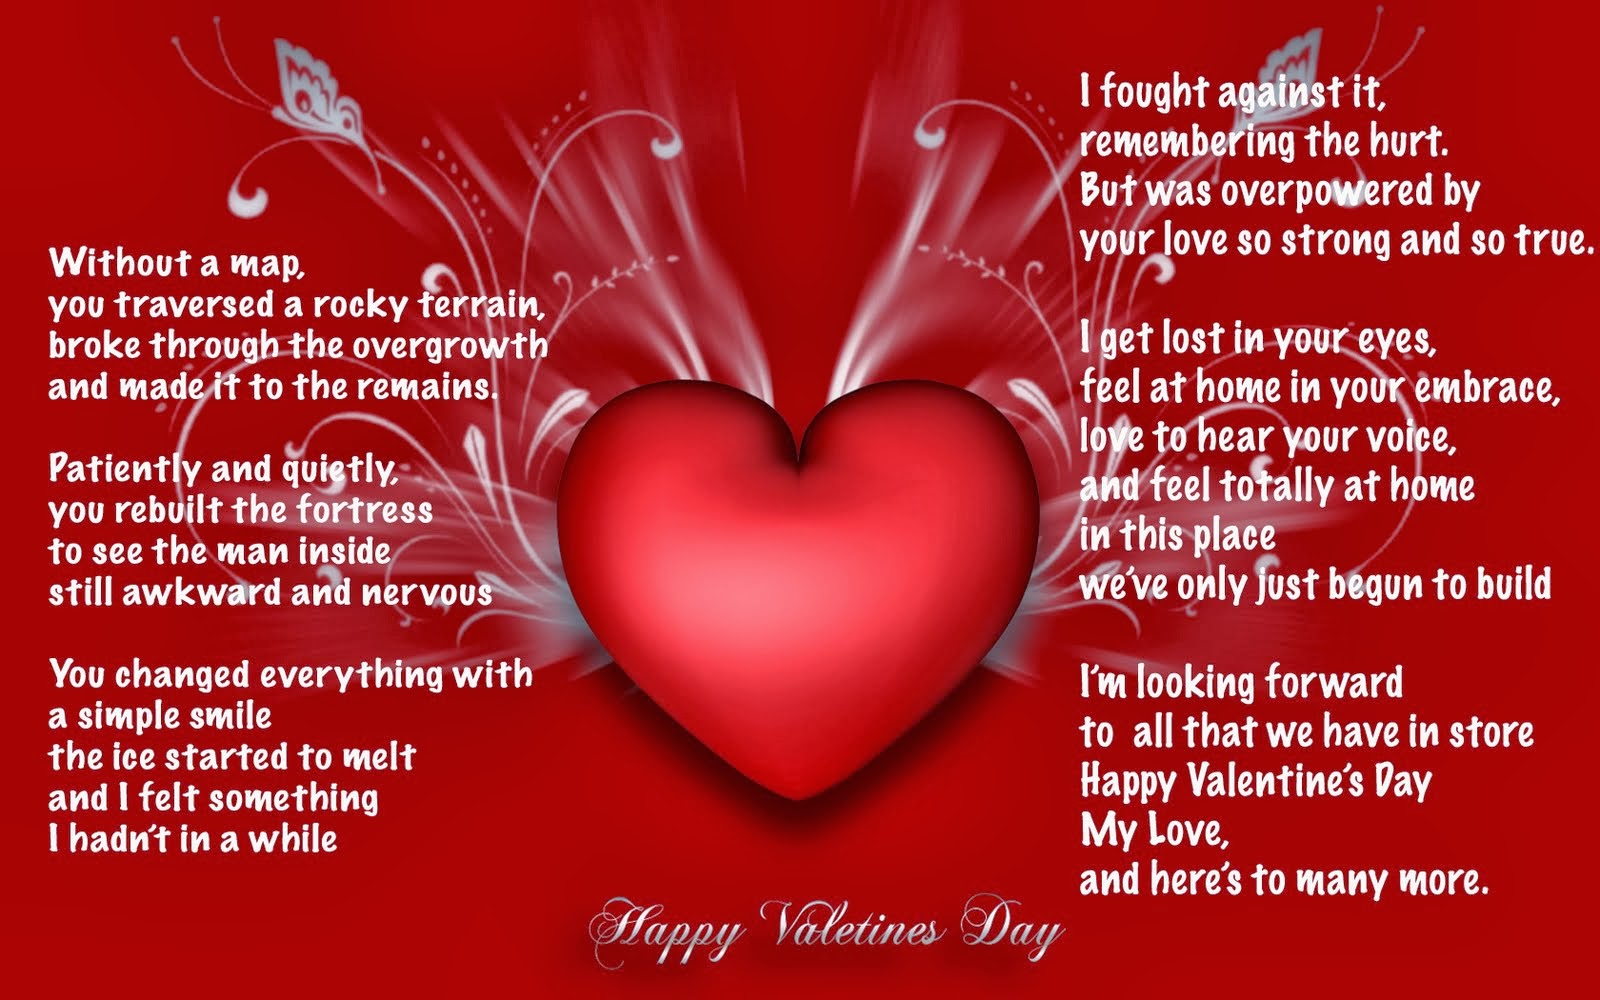 Cute valentines day sayings for cards funny cheesy quotes for What to put on a valentines card